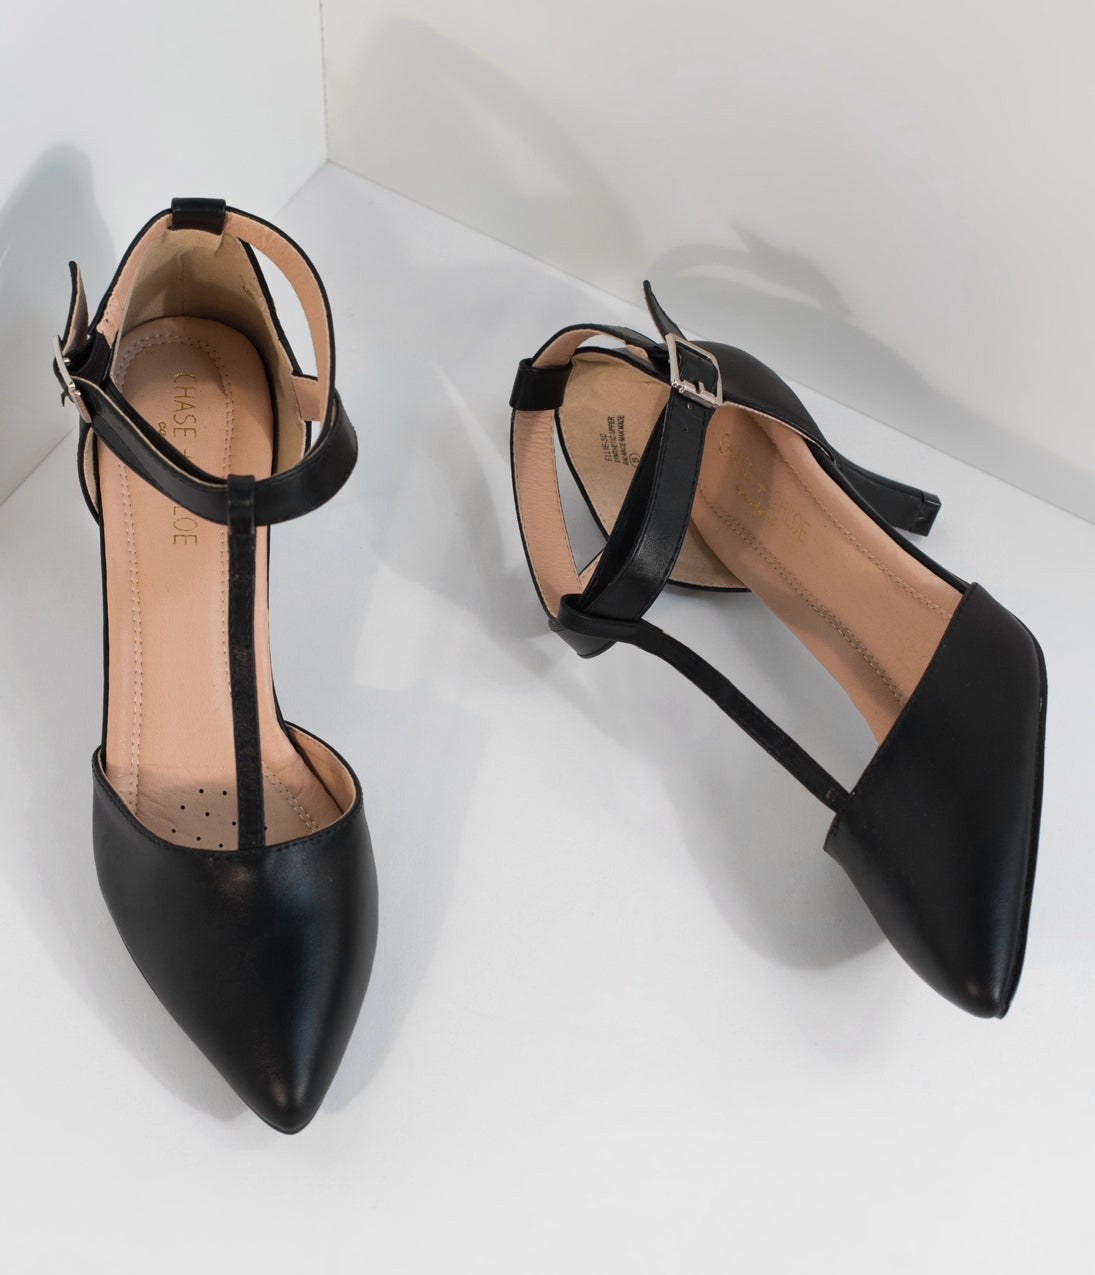 Rockabilly Shoes- Heels, Pumps, Boots, Flats Black Leatherette Pointed Toe Ellie T-Strap Heels $46.00 AT vintagedancer.com